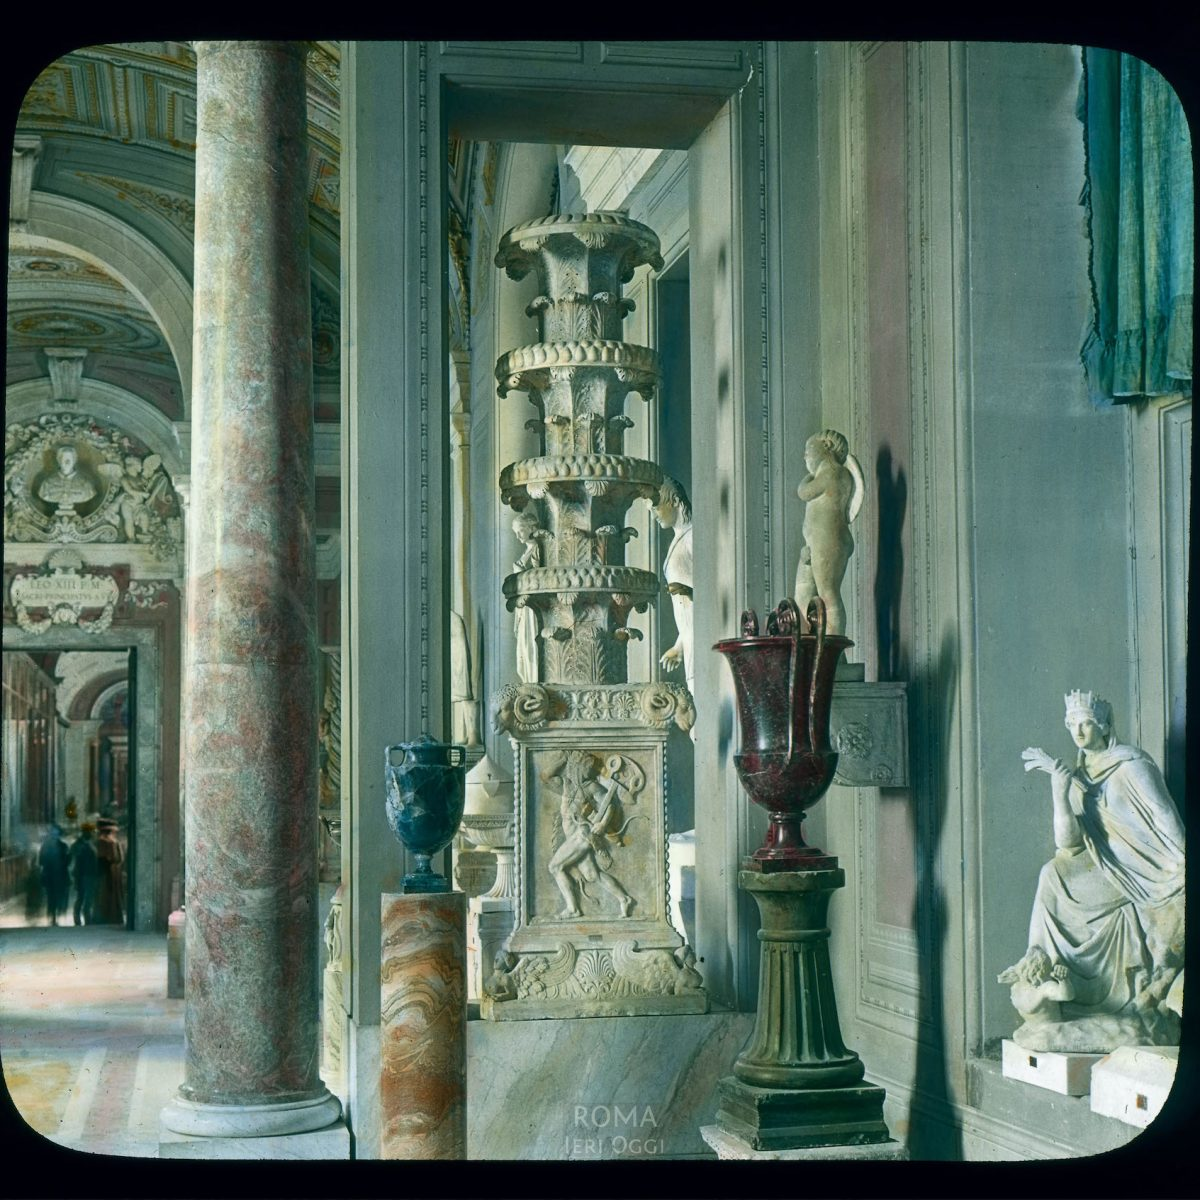 Vatican City. Vatican Museum, Museo Pio-Clementino: interior, Gallery of the Candelabra View in tinted lantern slide, ca. 1919-1938. The museum dates from ca. 1771.